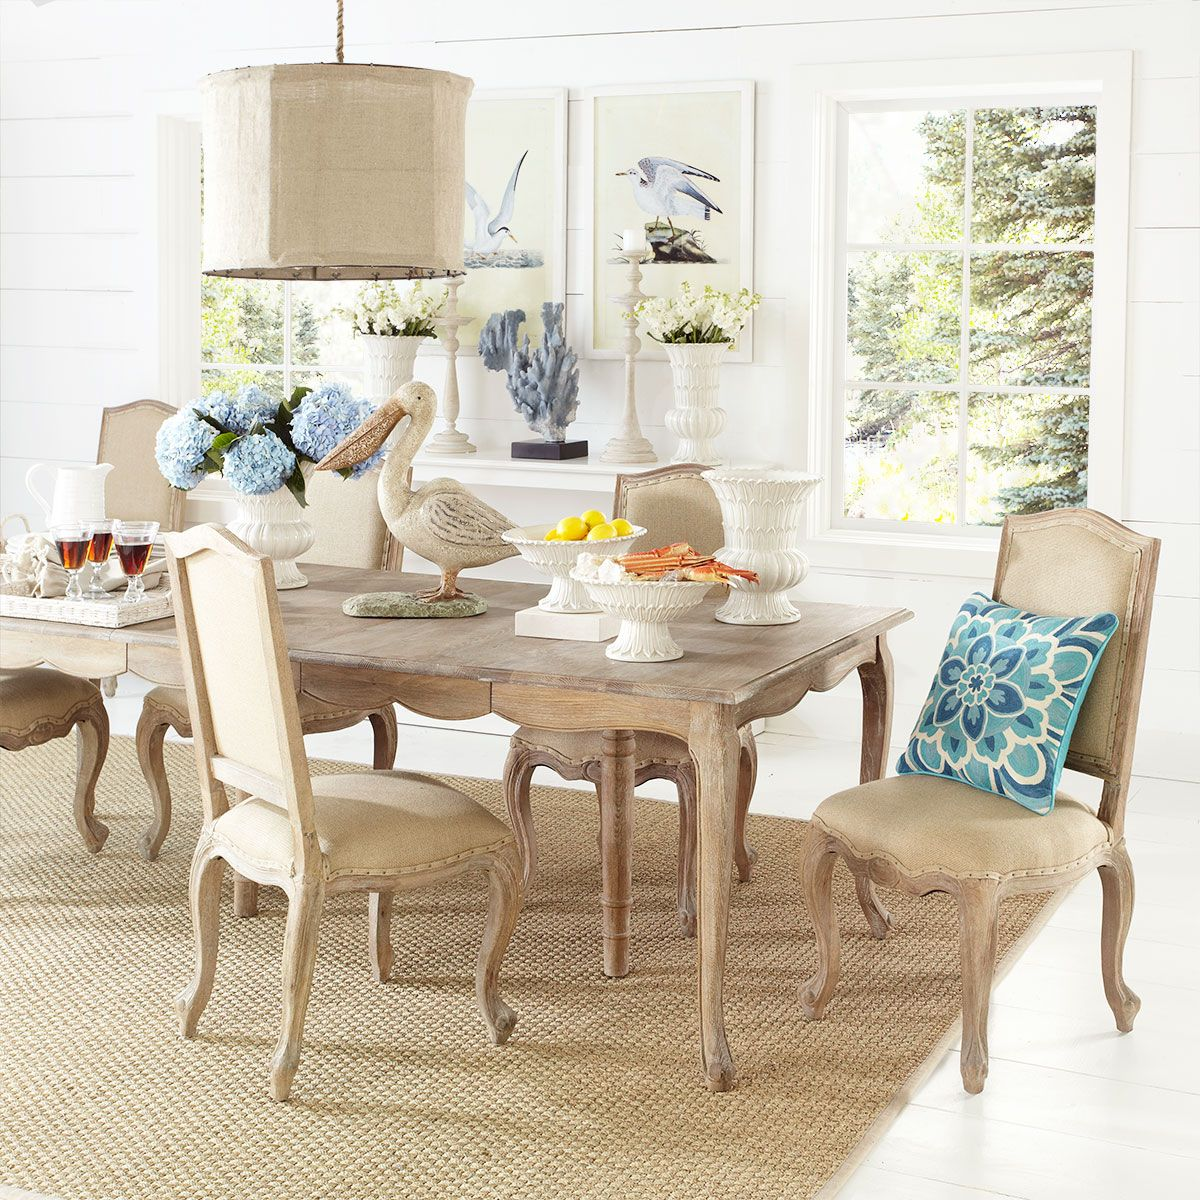 Wisteria Online W3819 French Country Dining Table With Leaves